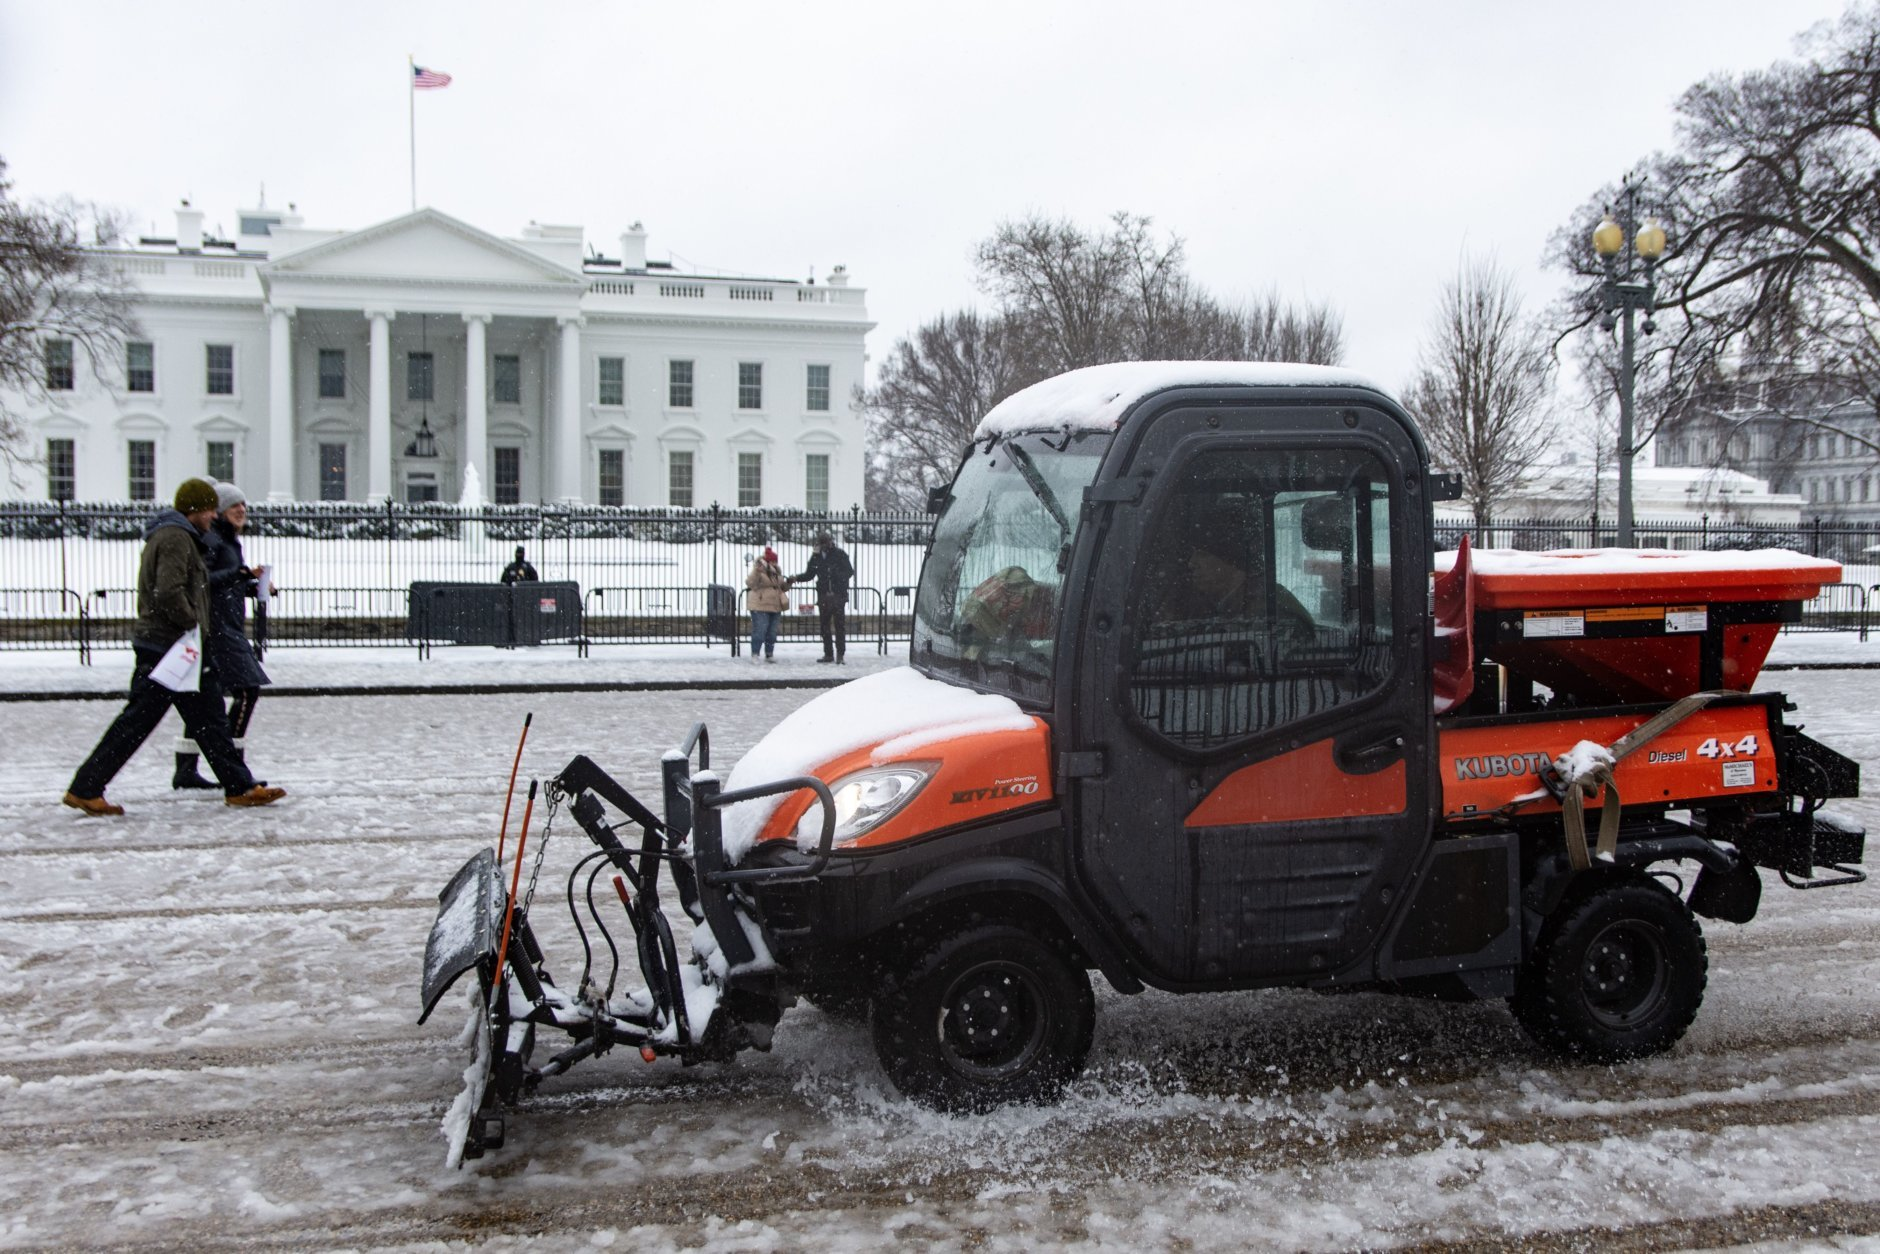 A small plow clears Pennsylvania Avenue outside the White House's north lawn on Wednesday. With the federal government closed, most of downtown D.C. was empty save for a few tourists snapping selfies in the snow. (WTOP/Alejandro Alvarez)